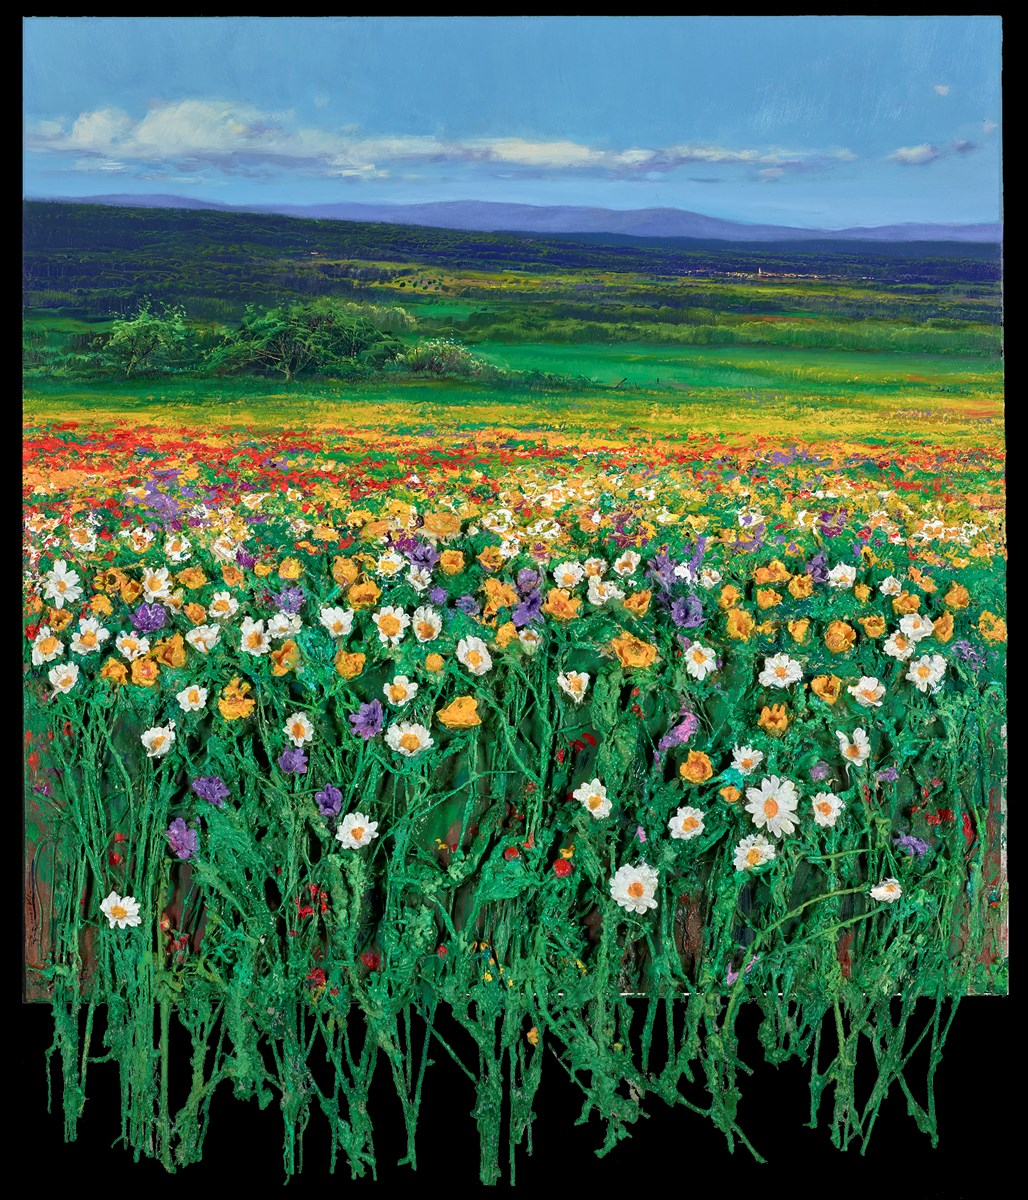 Campo en Primavera by ramon vila -  sized 31x32 inches. Available from Whitewall Galleries